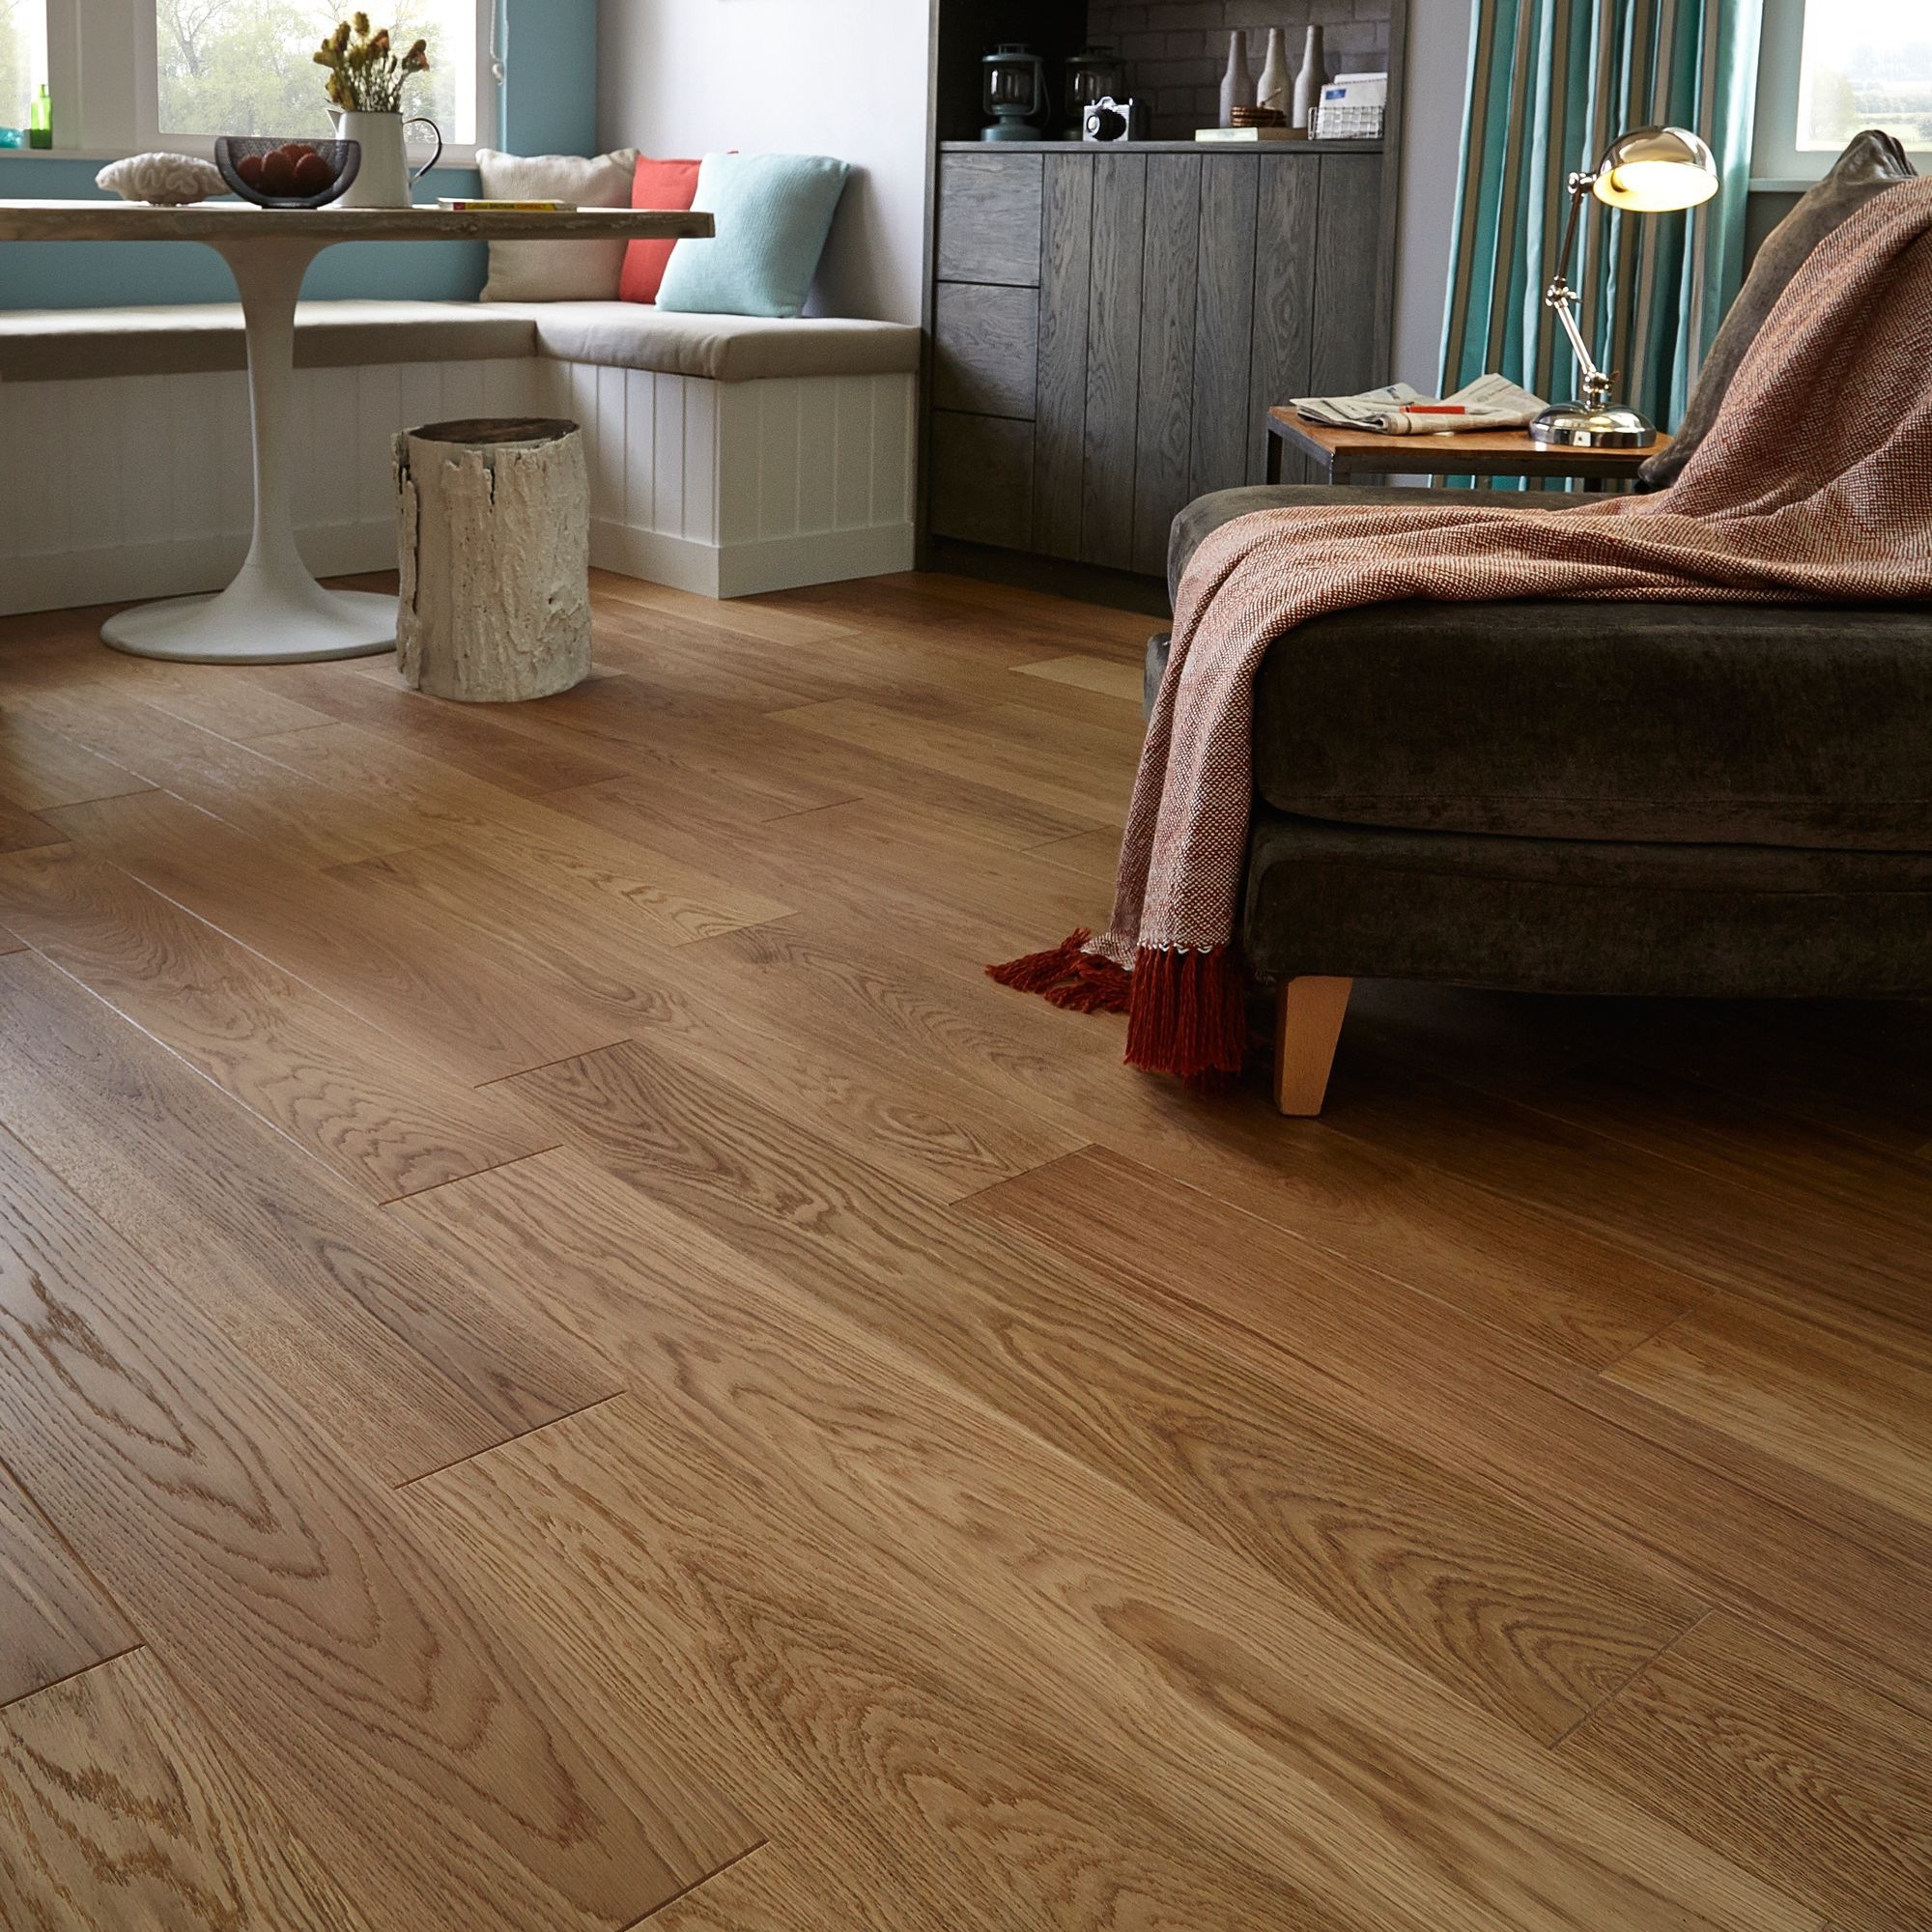 Quick step cadenza natural oak effect wood top layer for Quick step laminate flooring